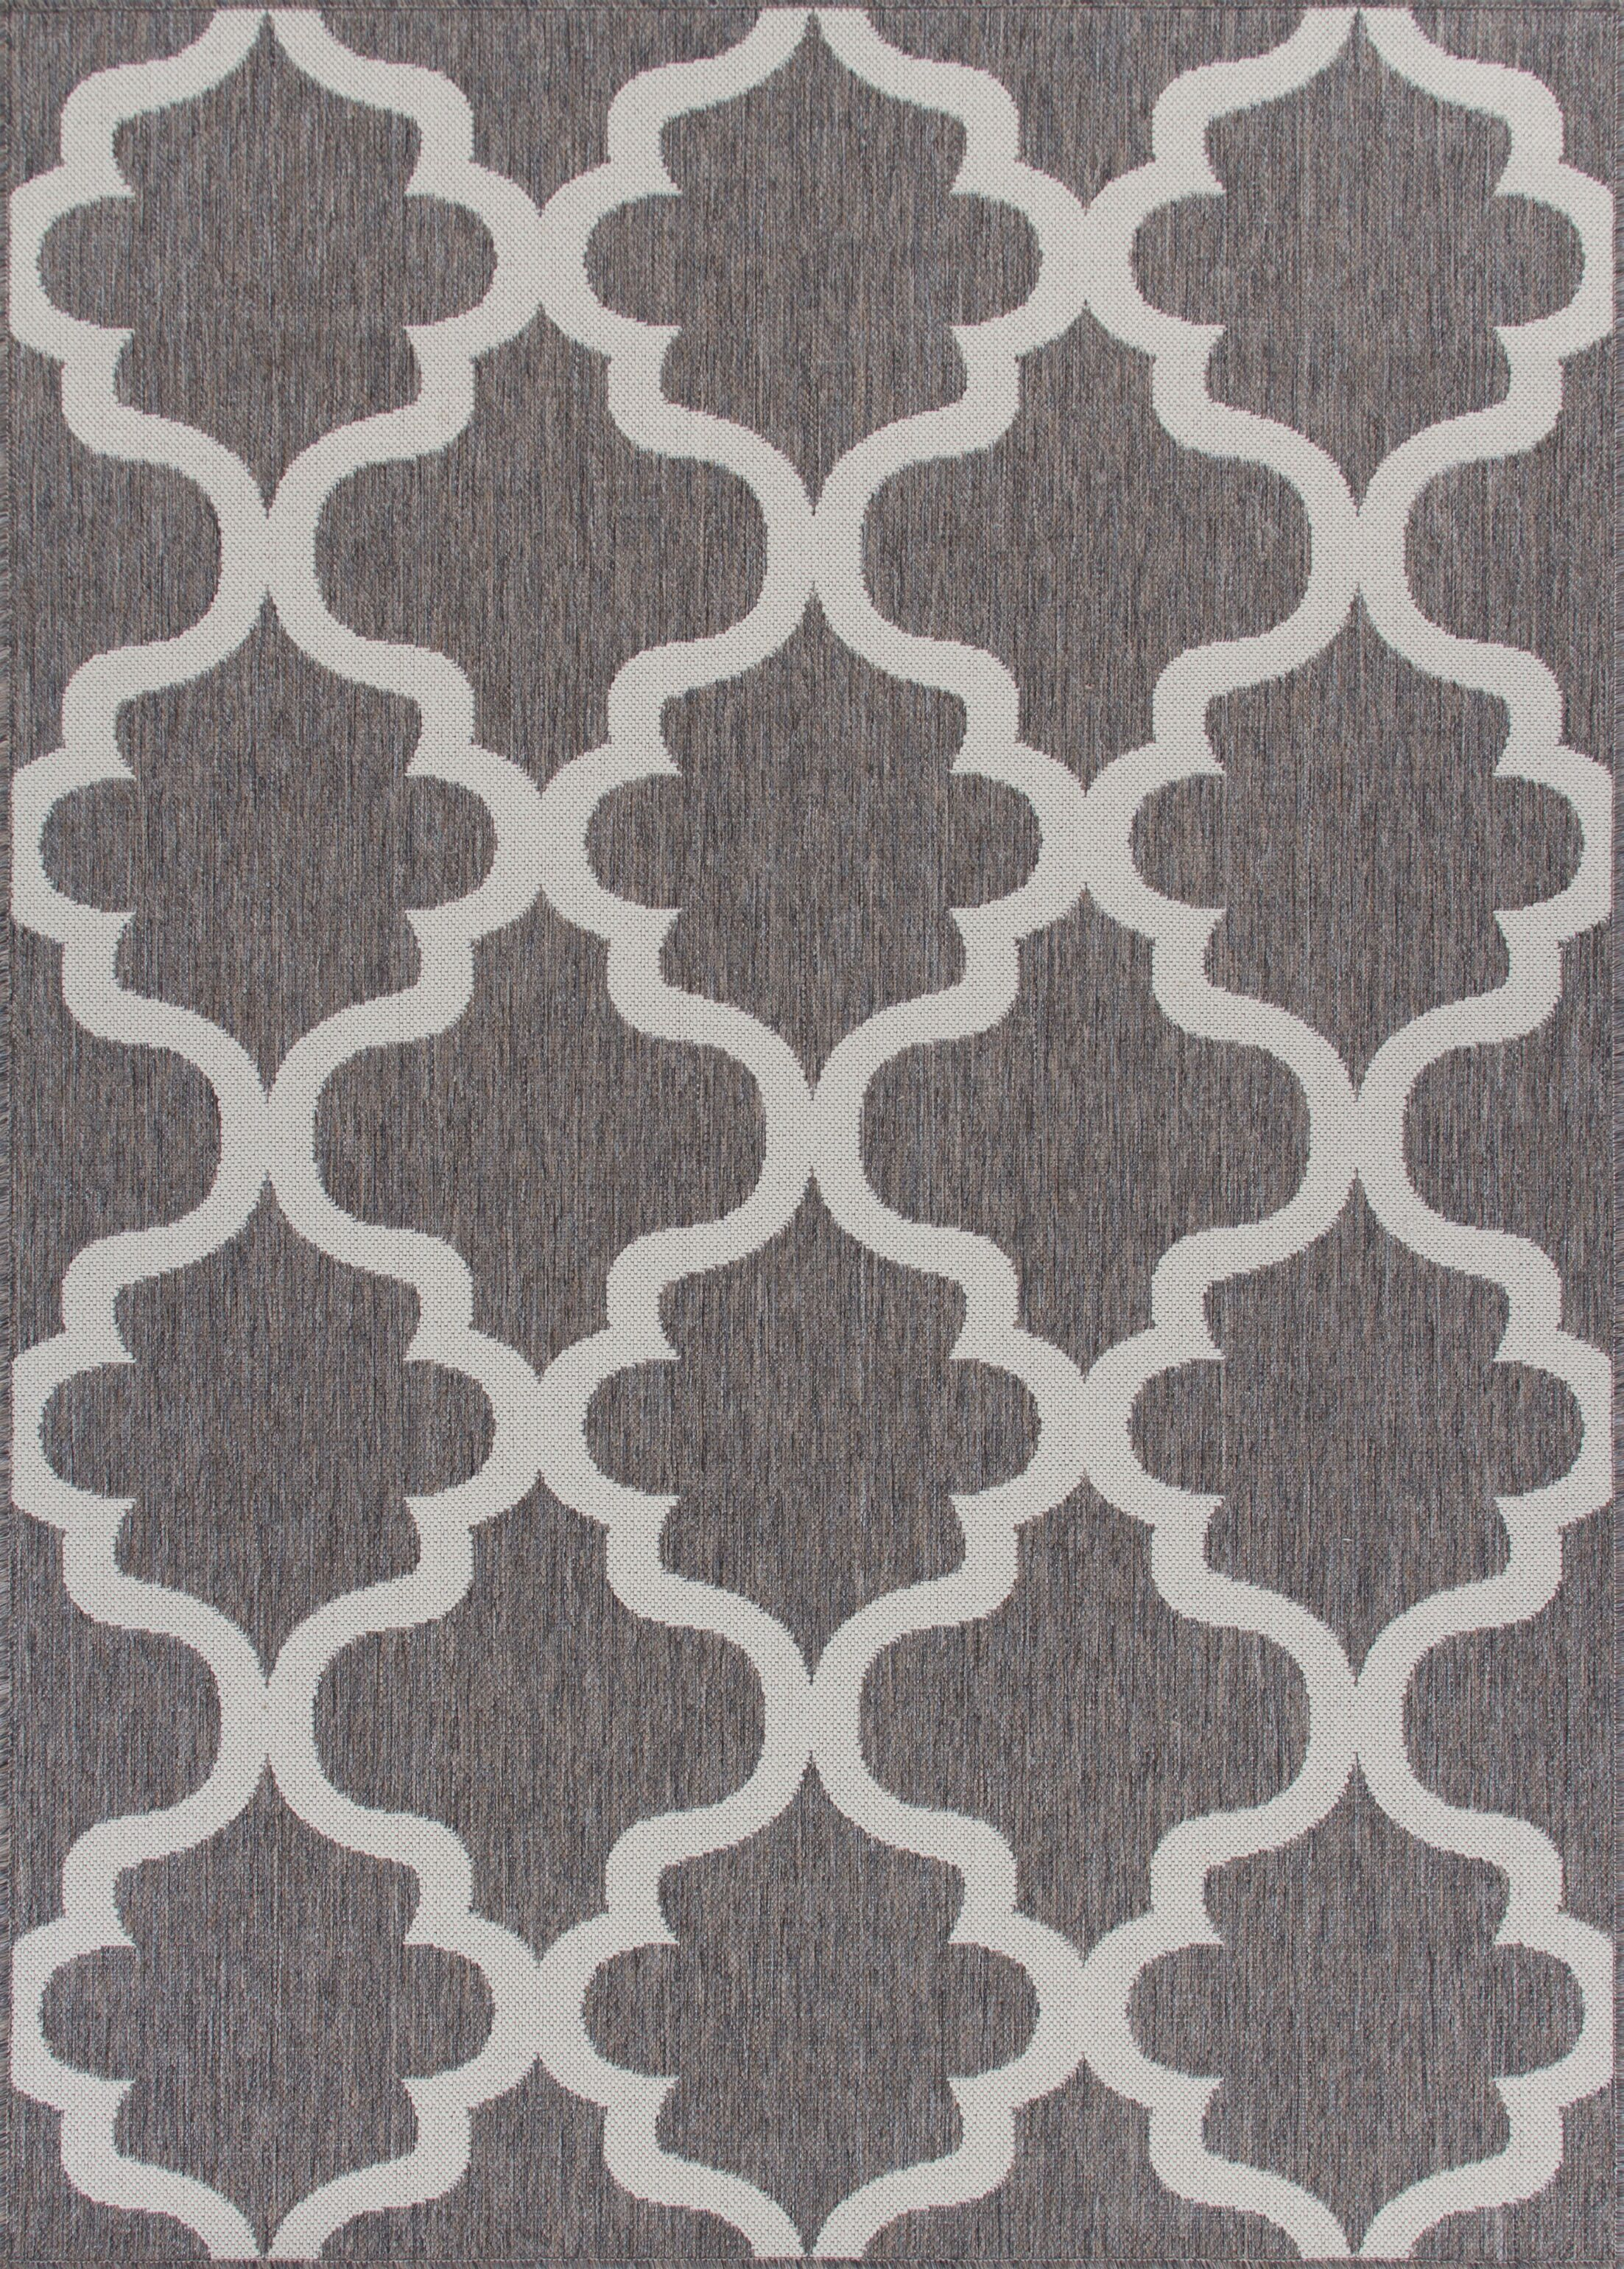 Ricky Weather-Proof Gray Indoor/Outdoor Area Rug Rug Size: Rectangle 9' x 12'